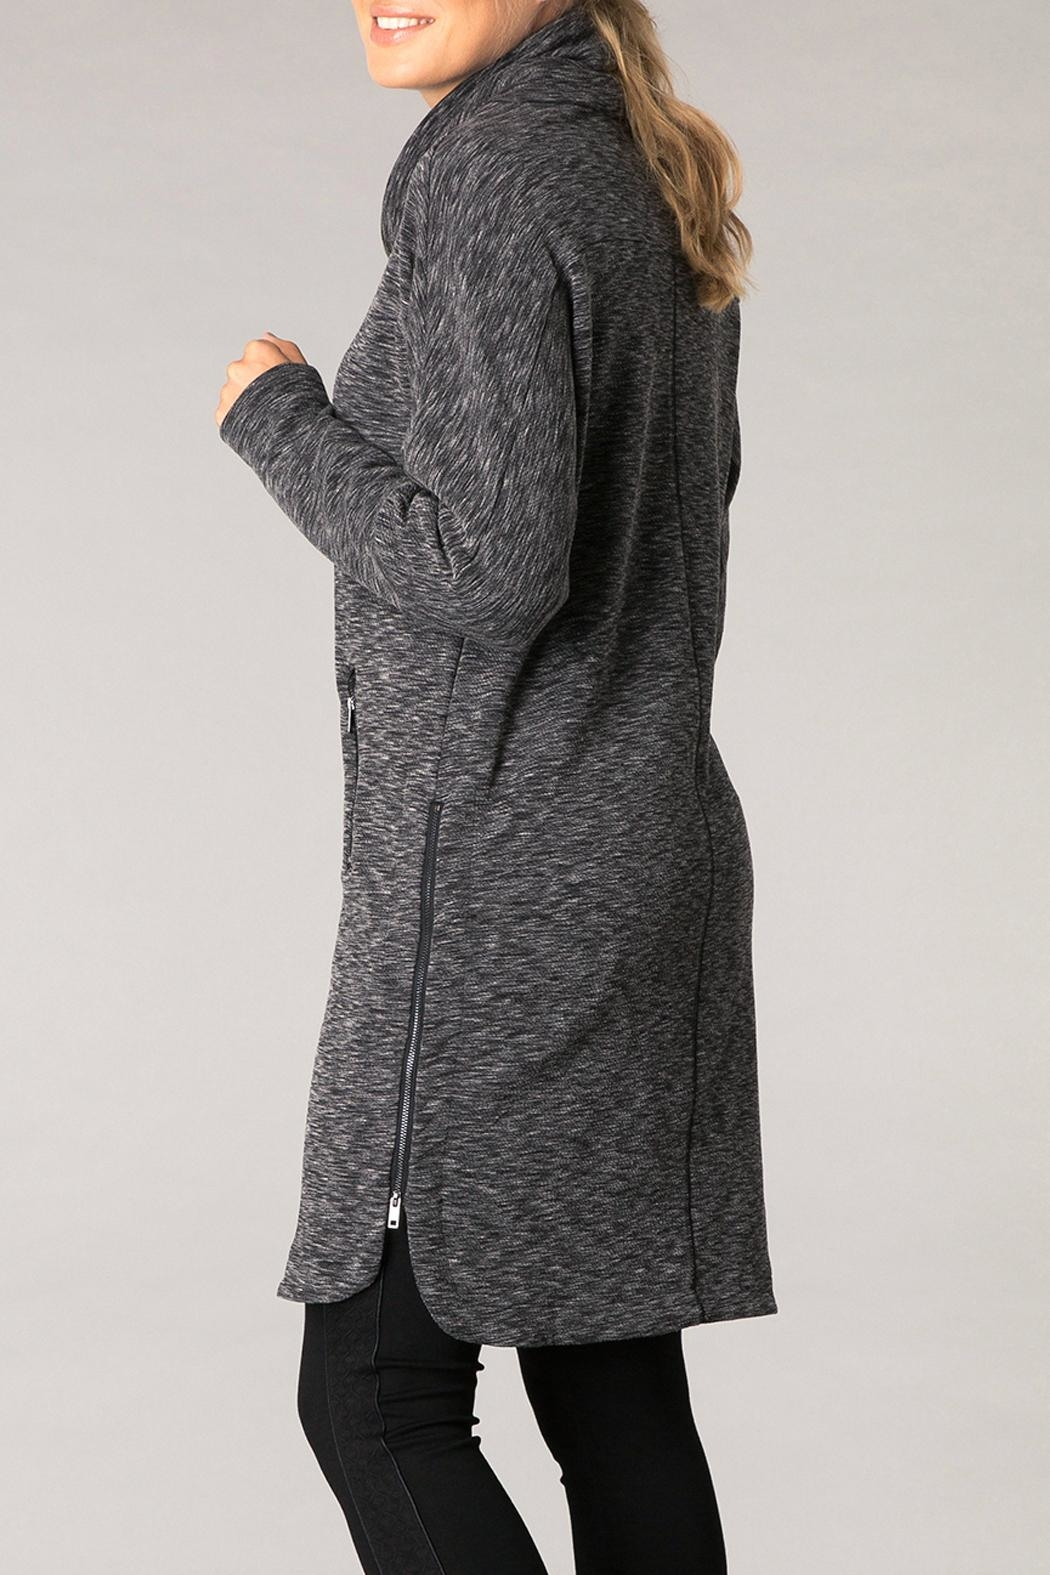 Yest Black Comfy Tunic - Front Full Image